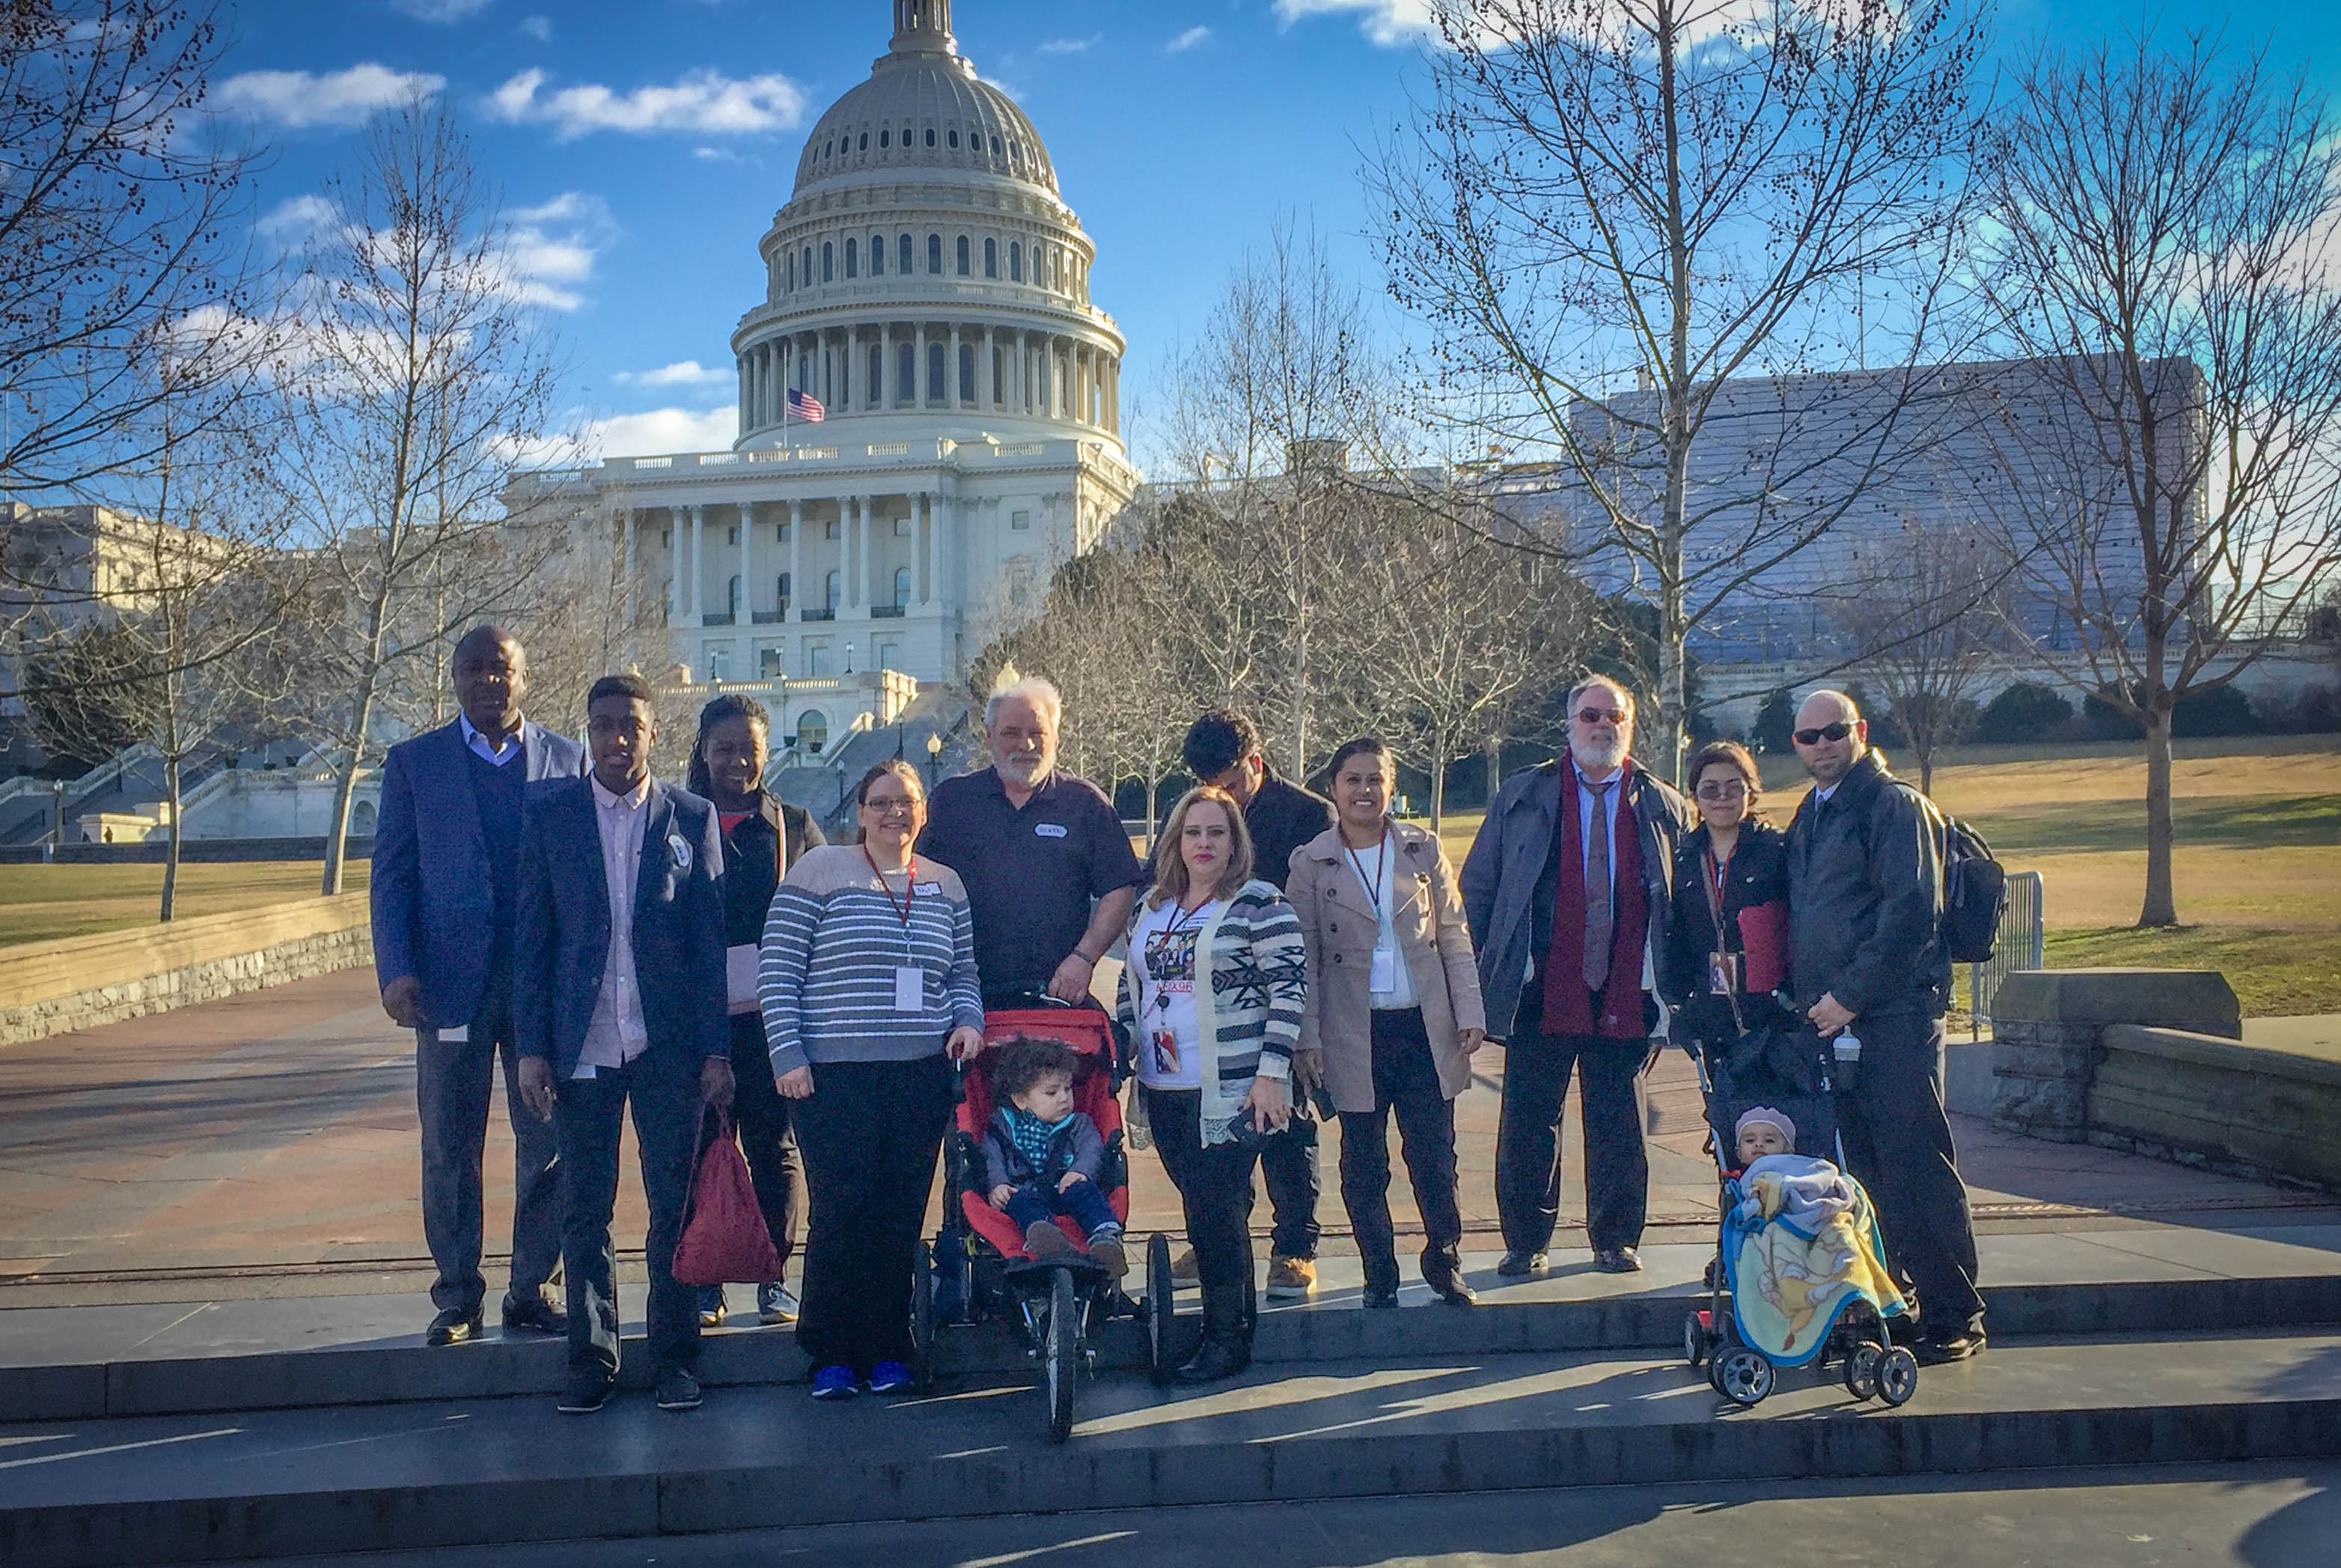 Our group on Capital Hill